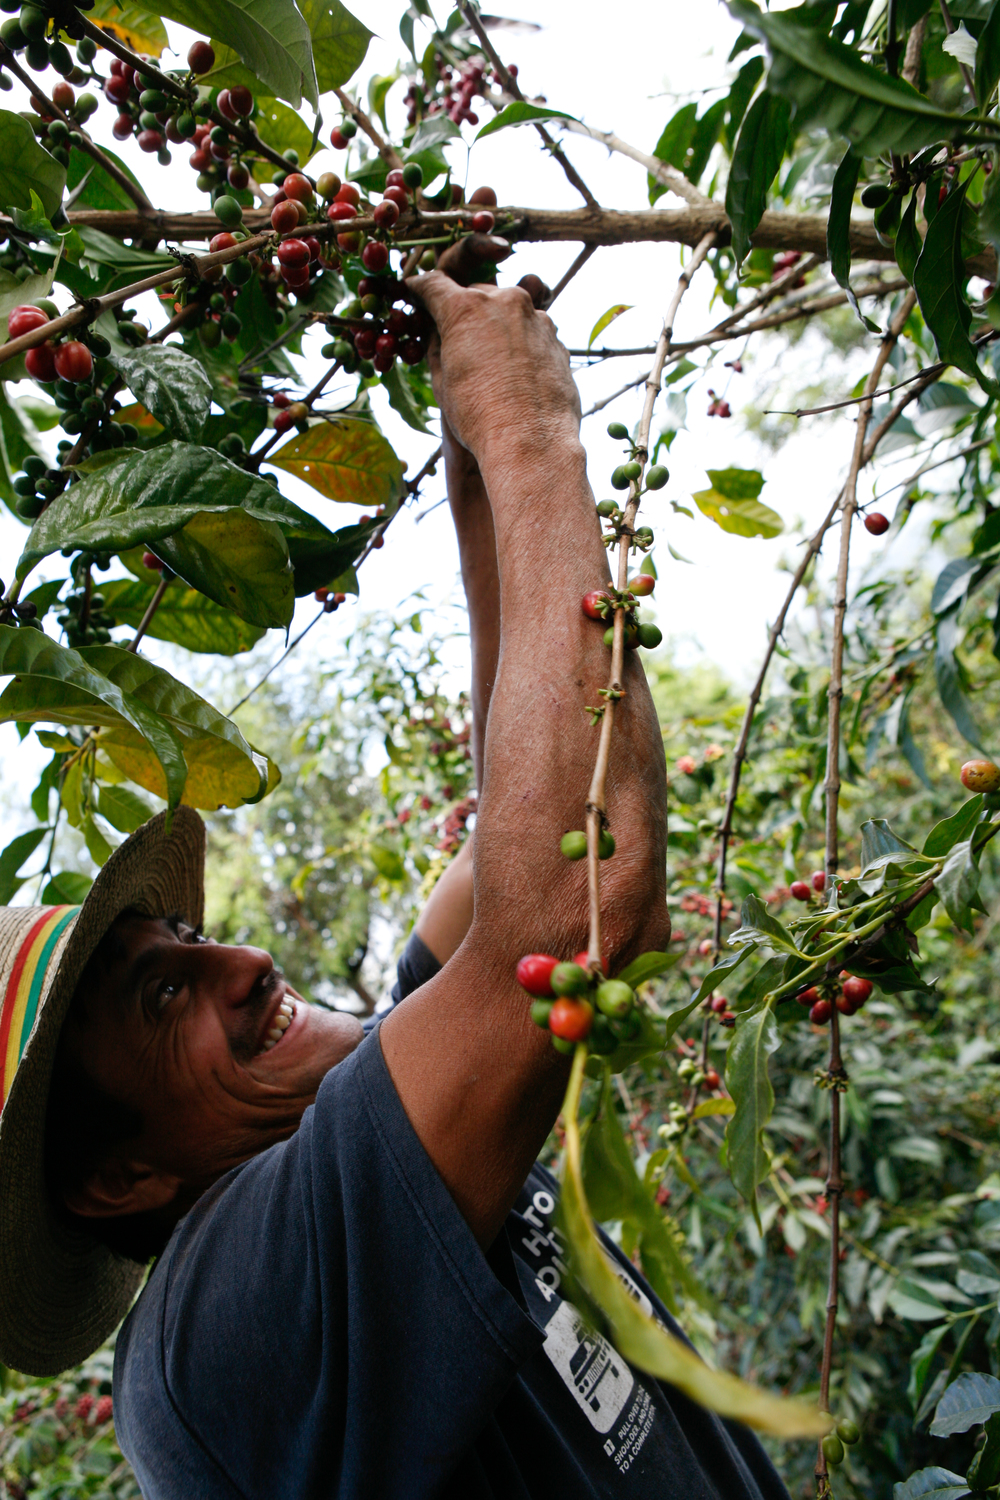 Timo harvesting ripe coffee fruit in San Miguel Escobar.